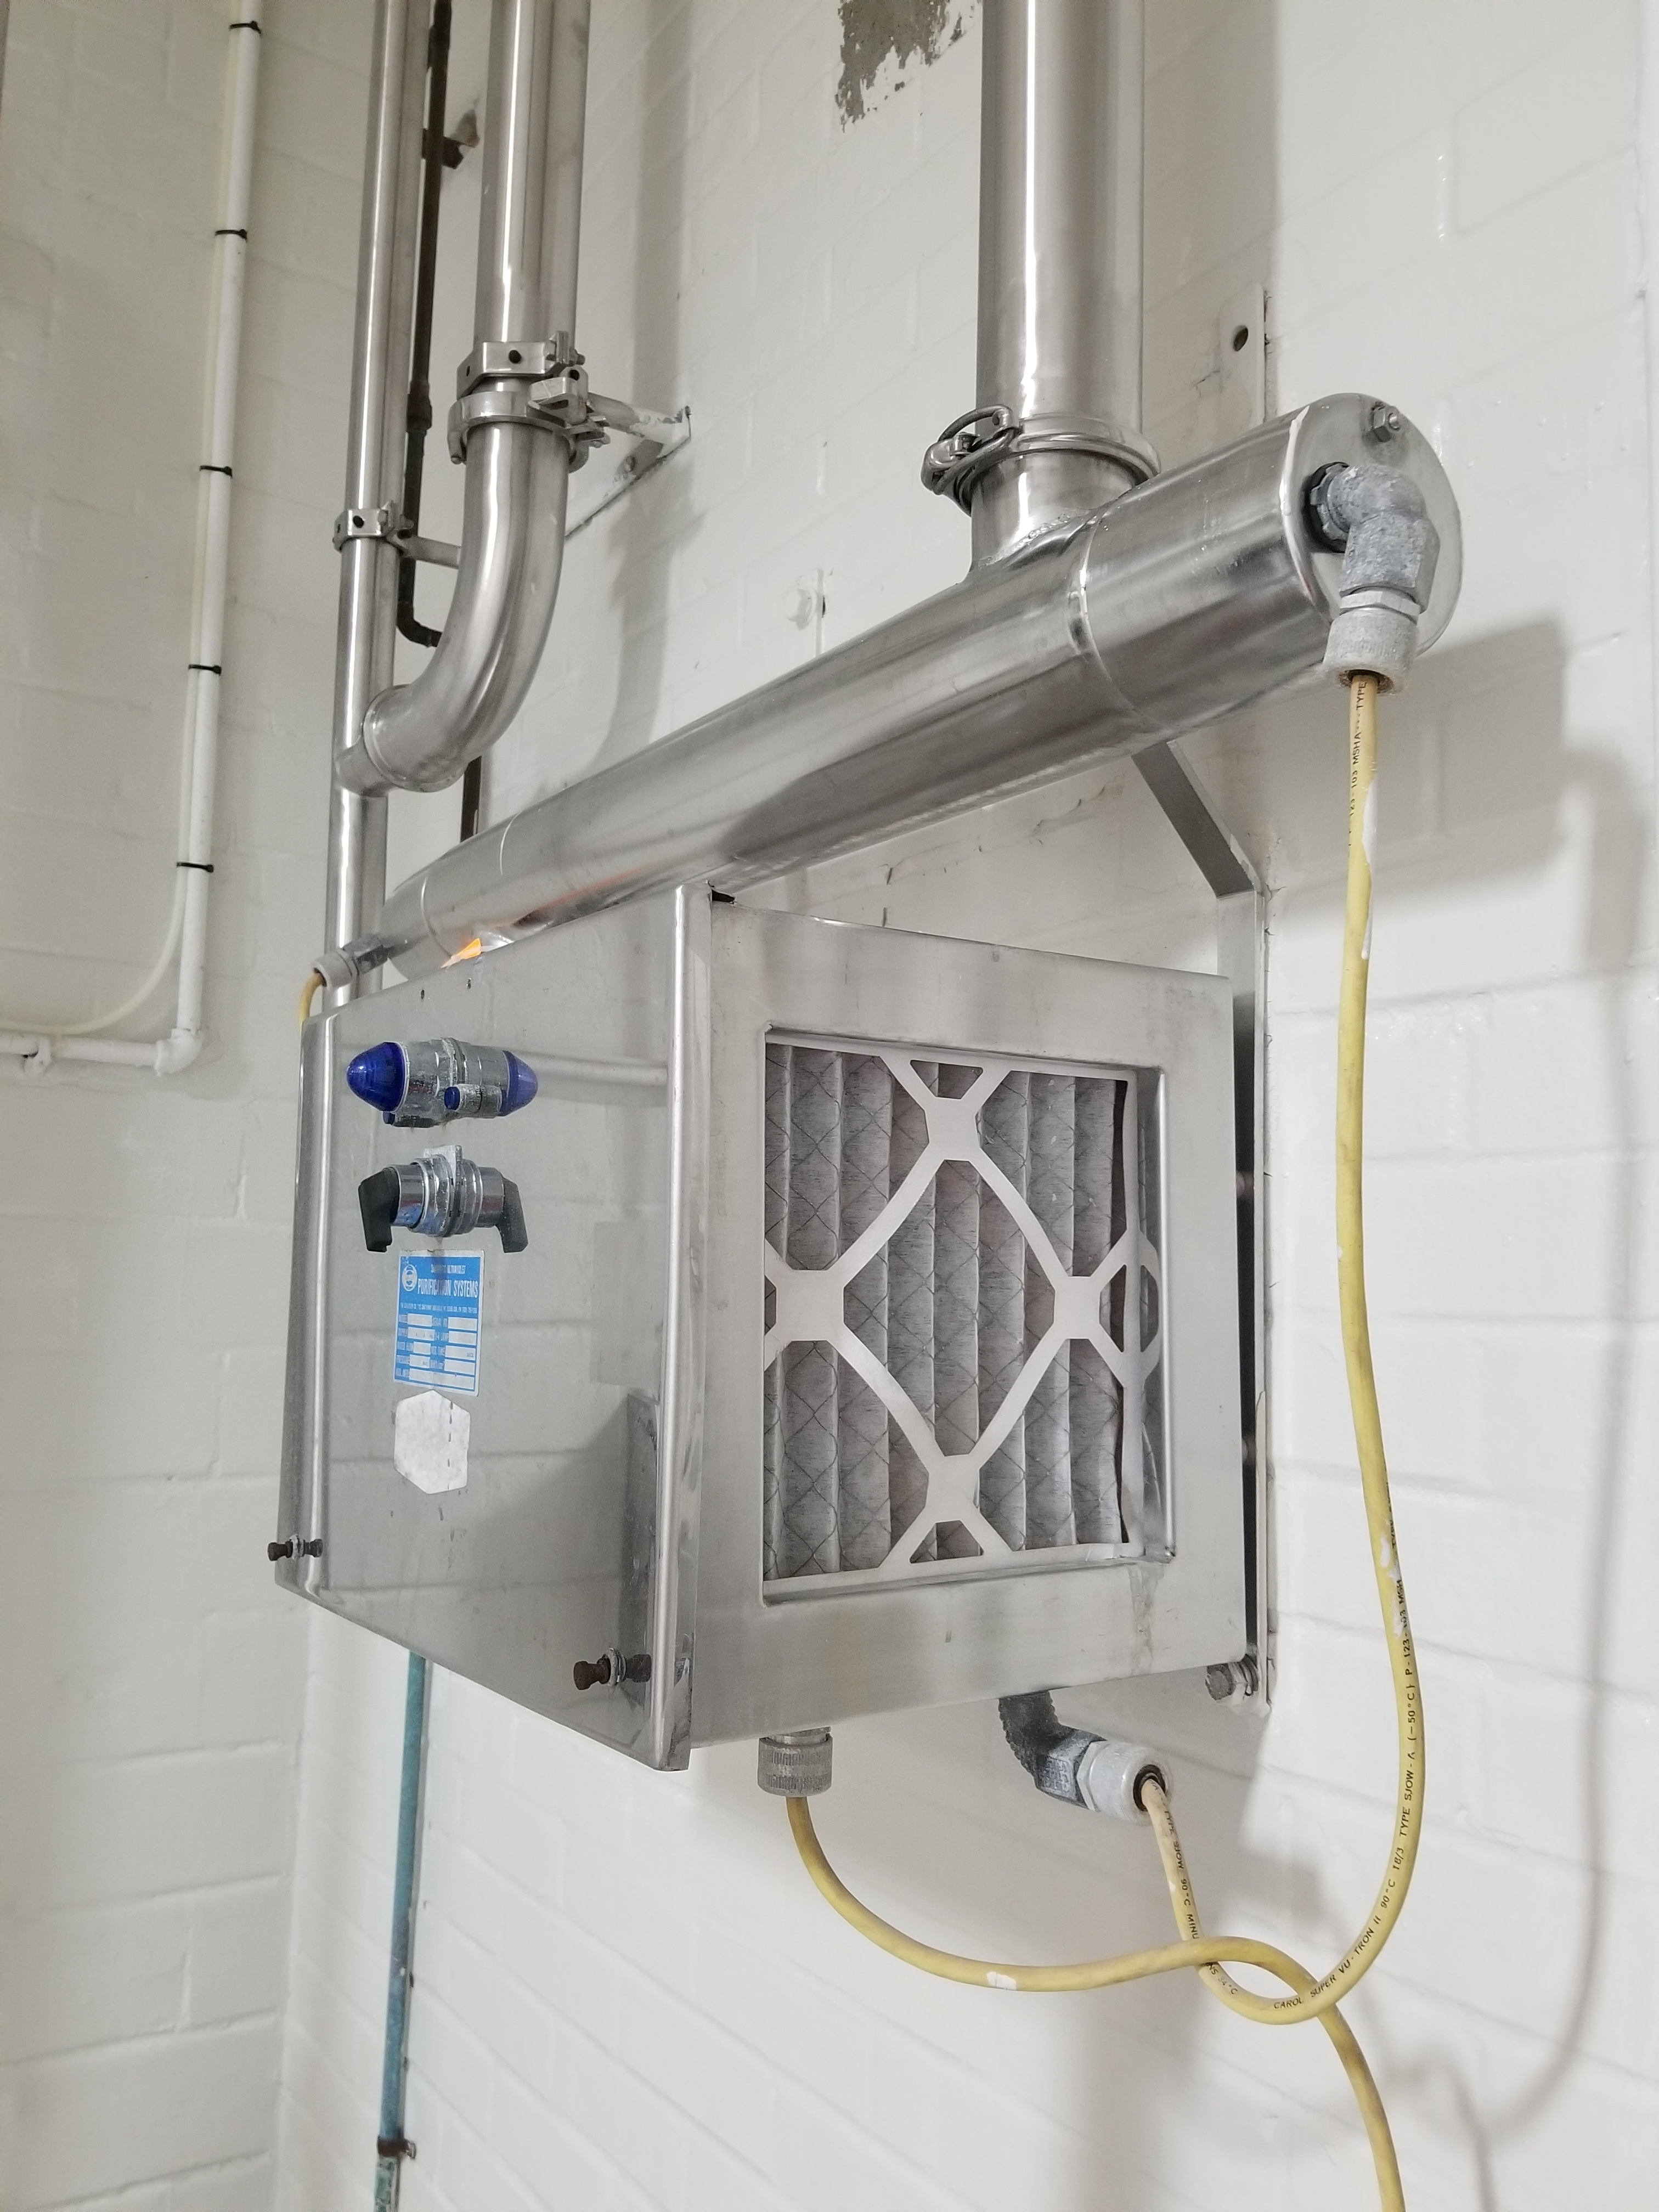 Sani-matic Ultraviolet Purification System - Image 4 of 4